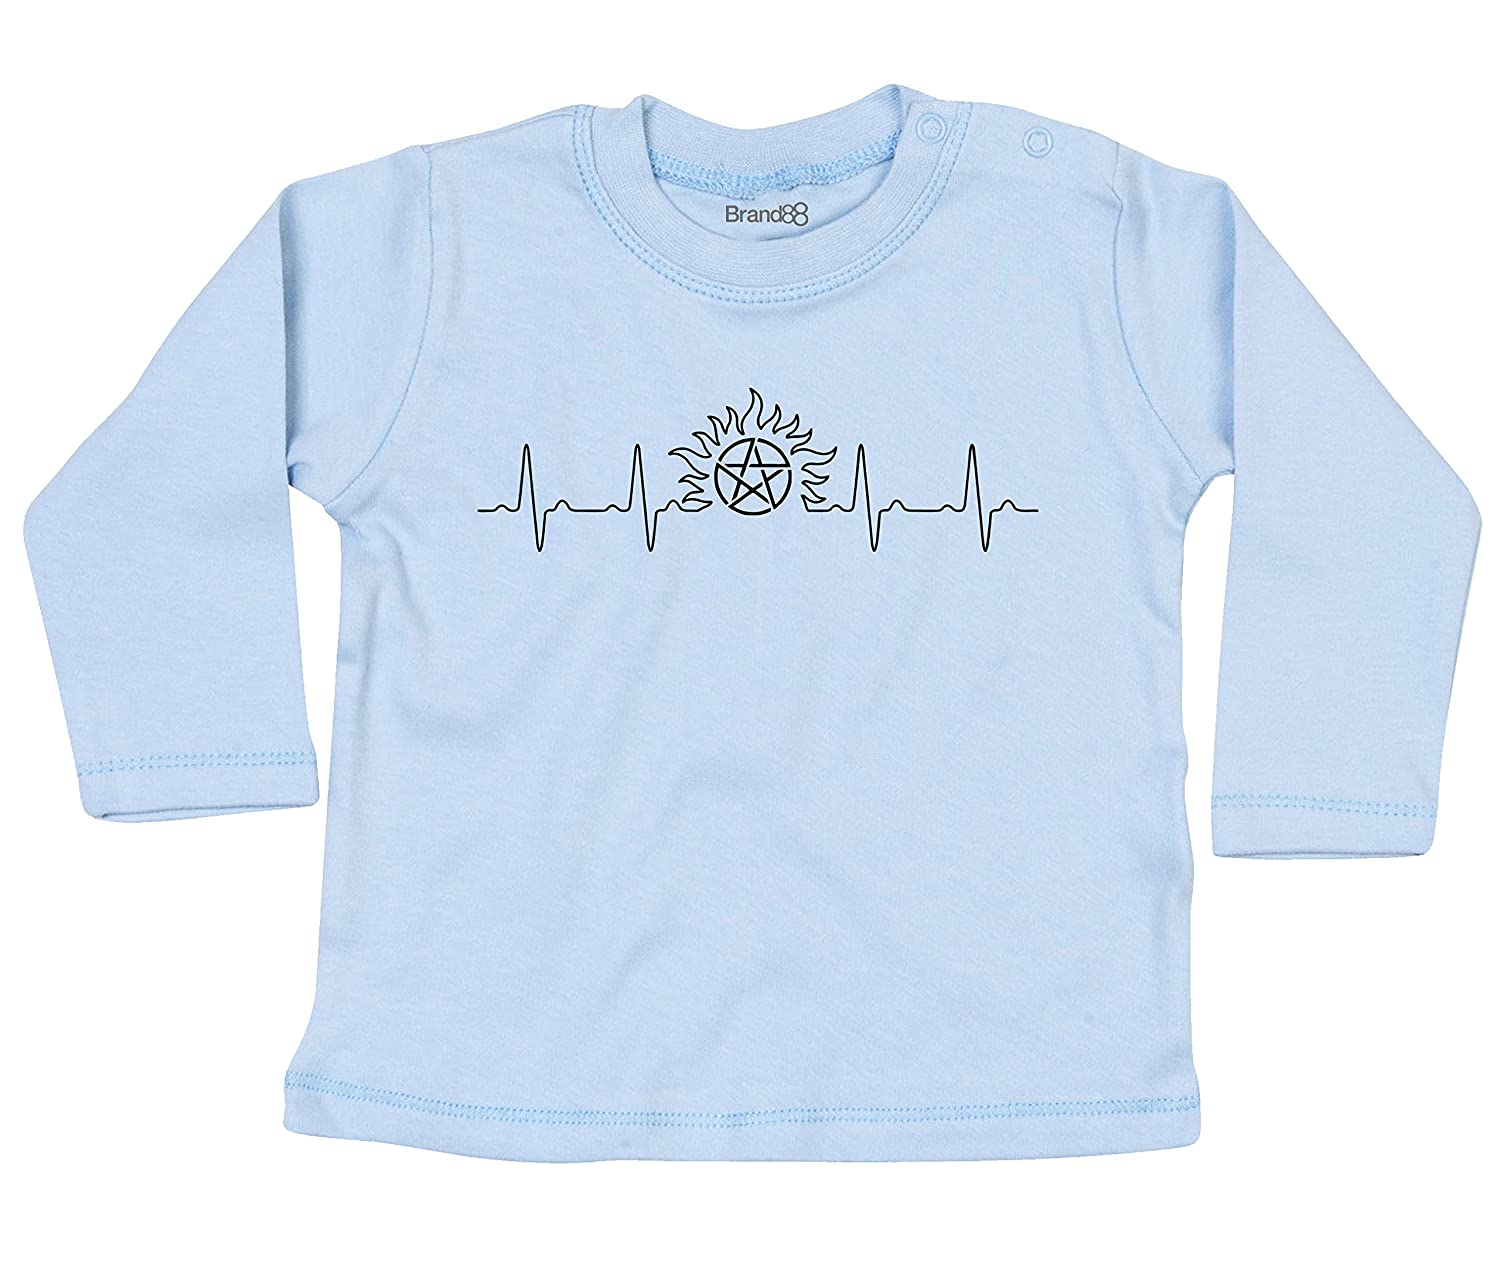 Brand88 Supernatural Heartbeat Baby L//S T